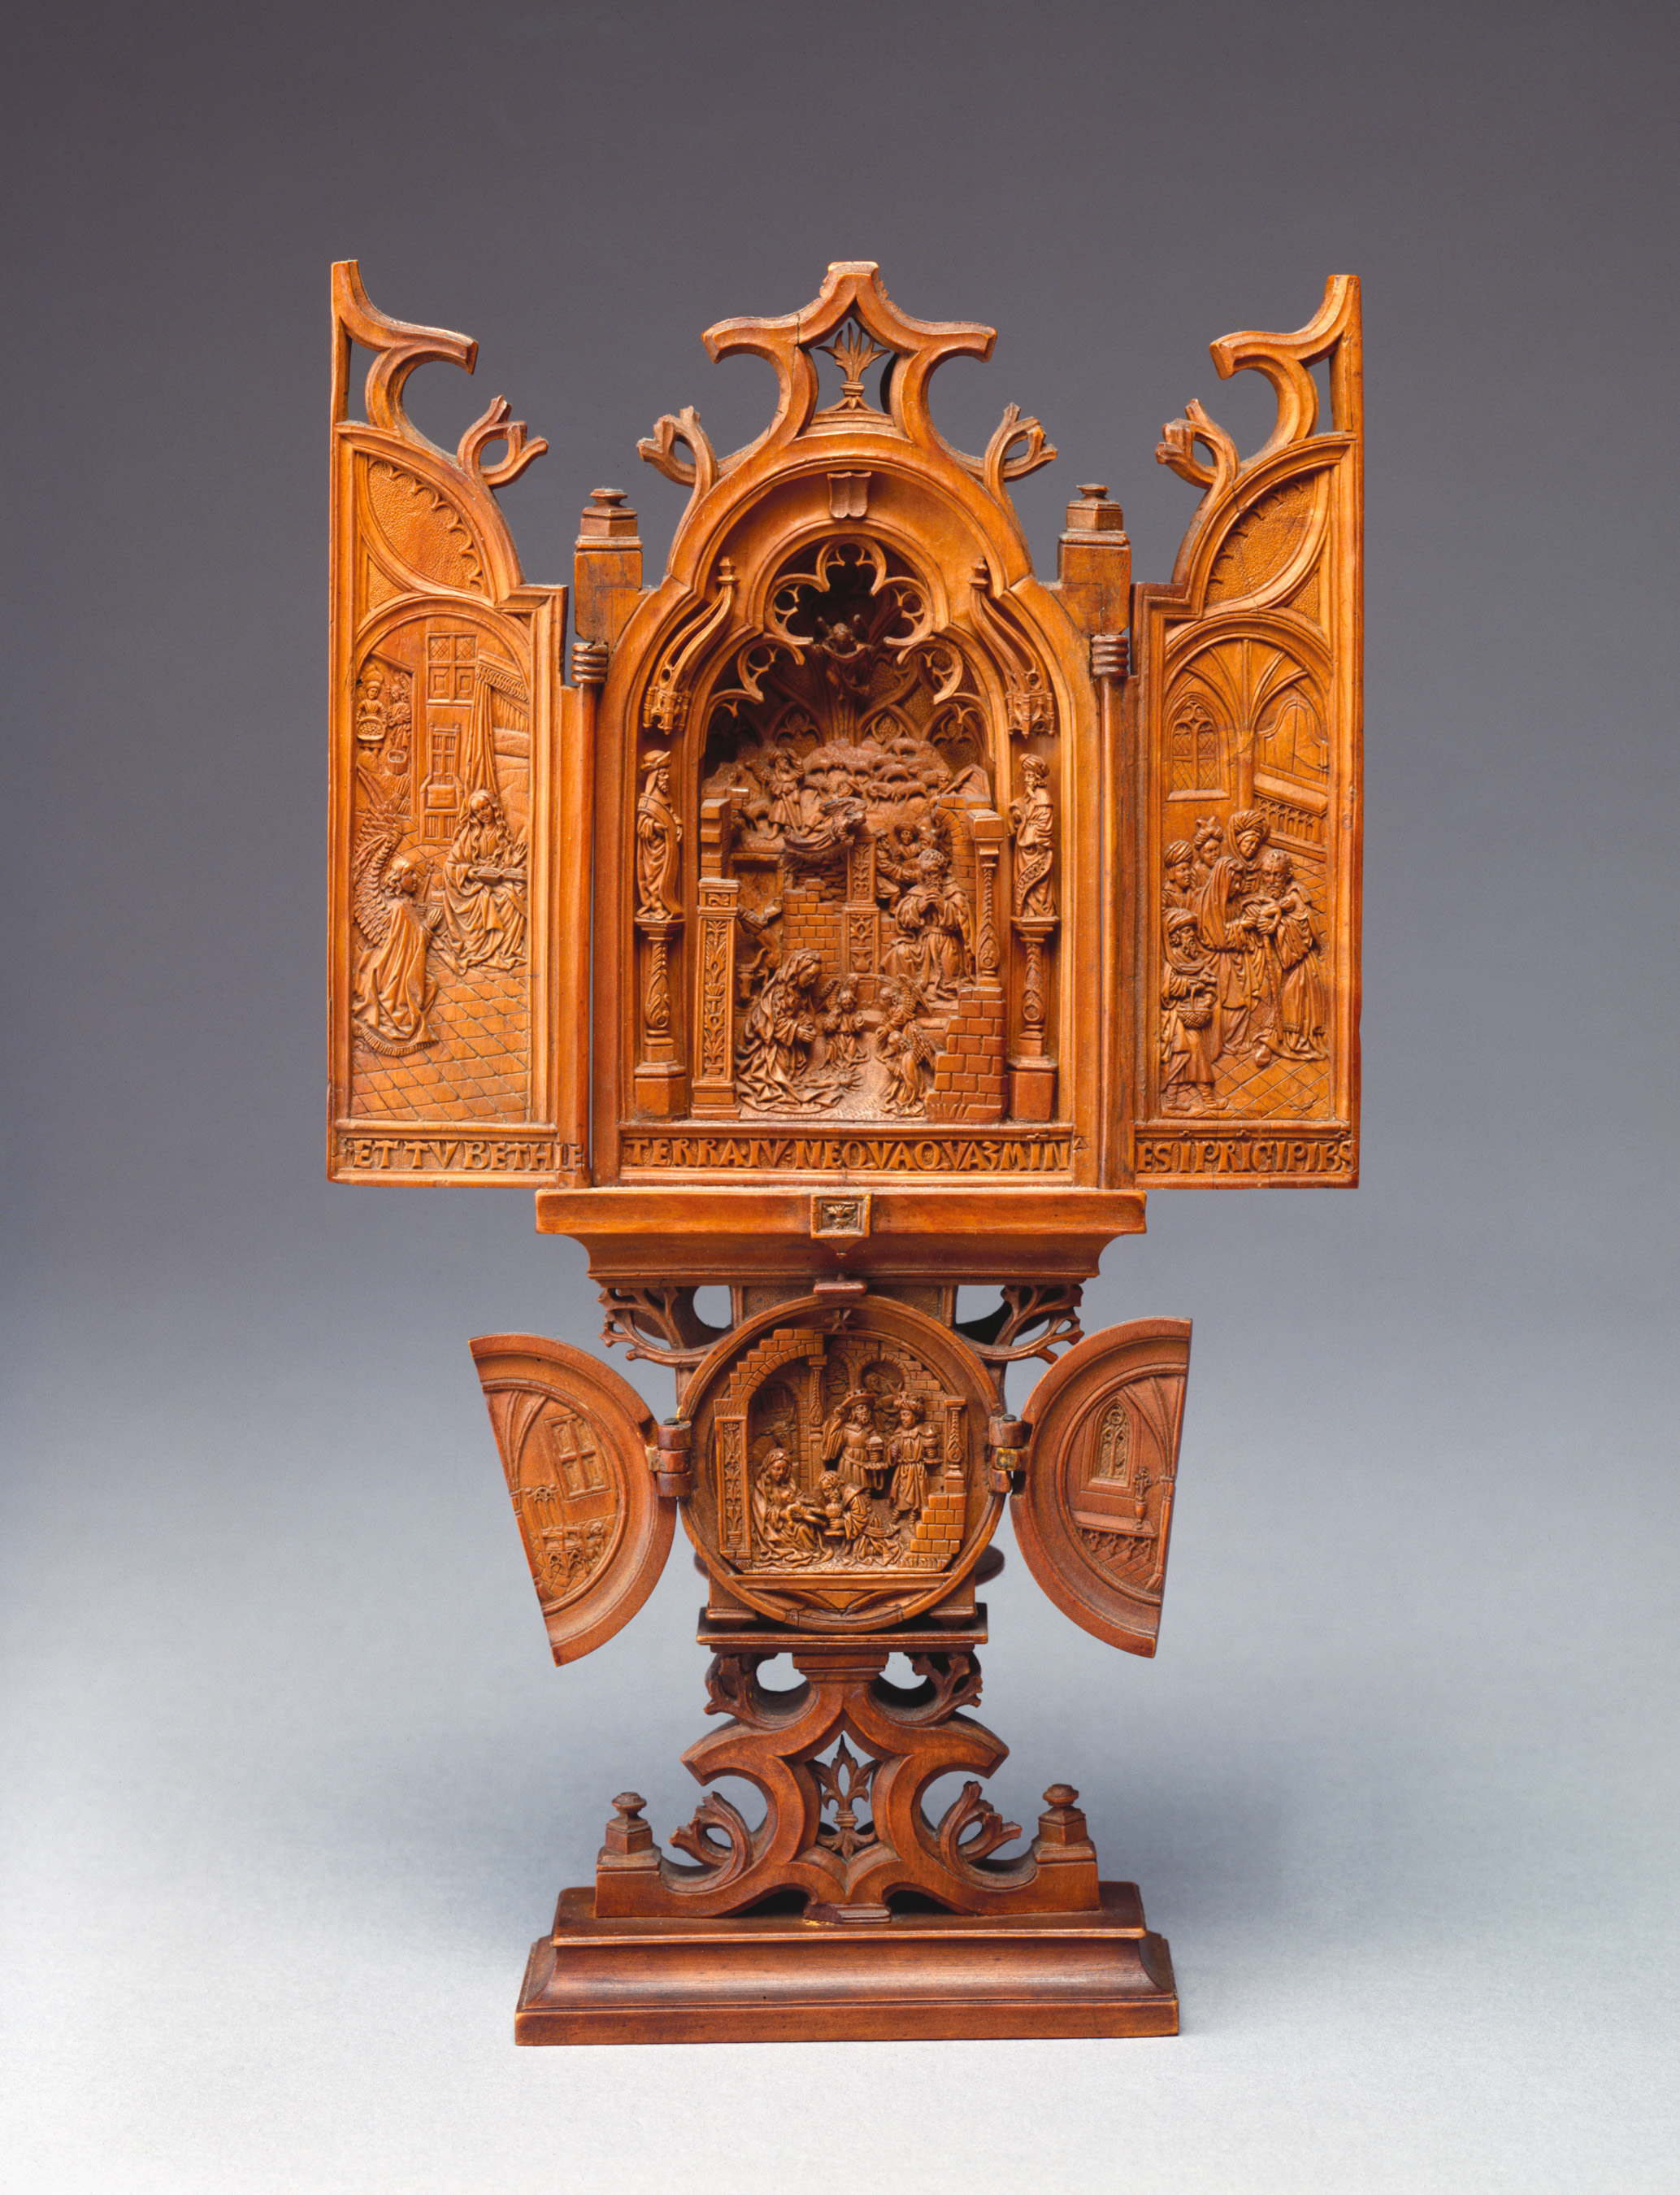 Unidentified artist (Brabant), Triptych, ca. 1520, boxwood, 22.9 x 13.6 cm Detroit Institute of Arts